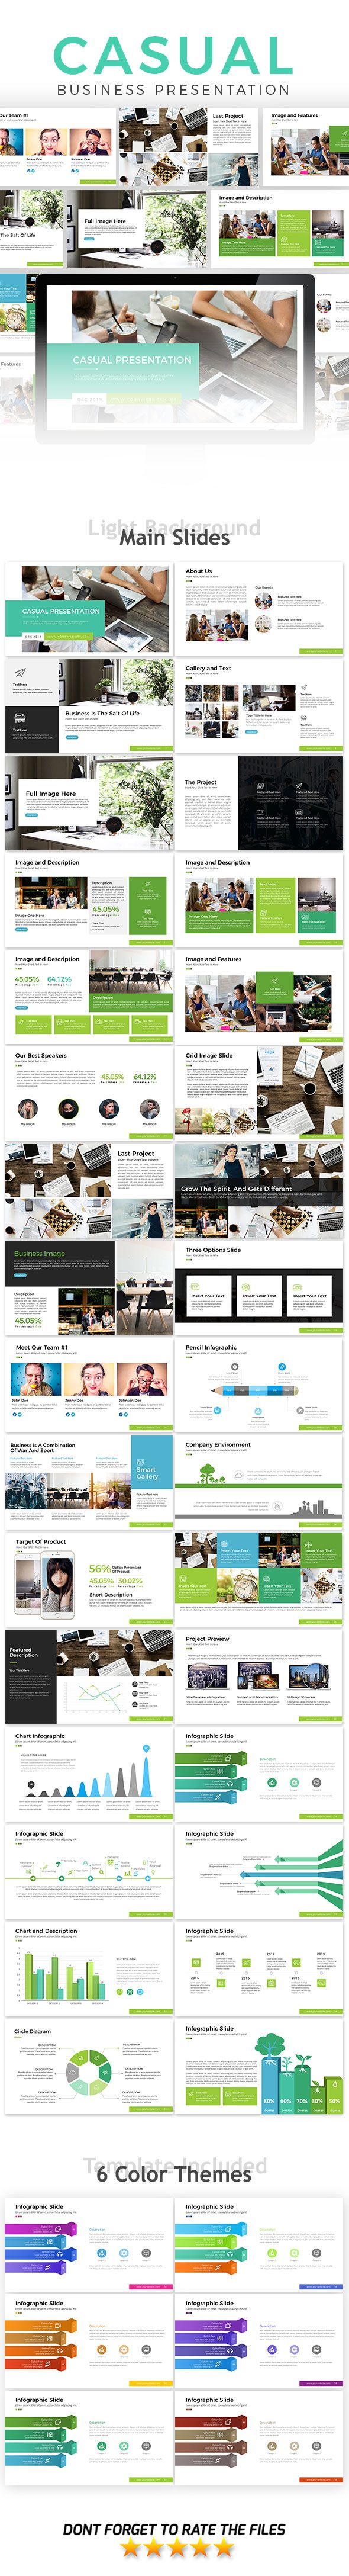 Casual Business Presentation Template - Business PowerPoint Templates